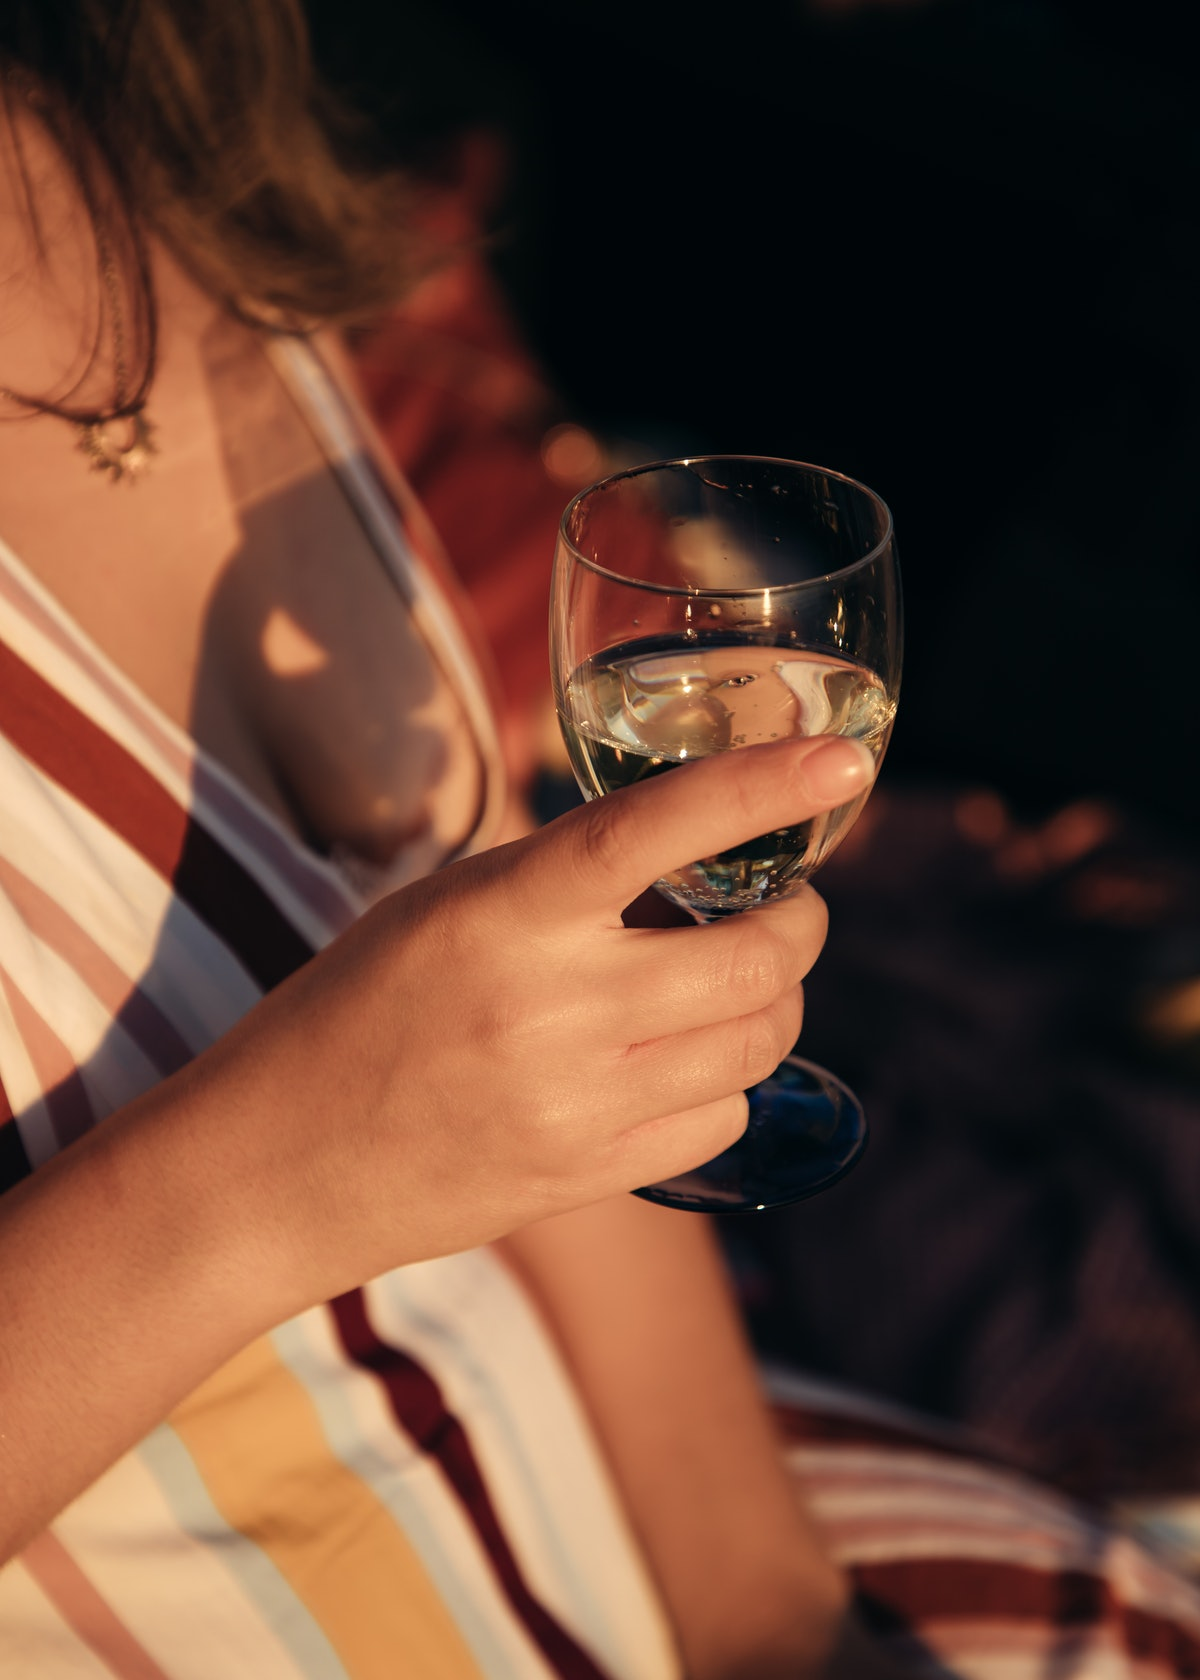 A young woman holds a champagne glass in her hands at golden hour.